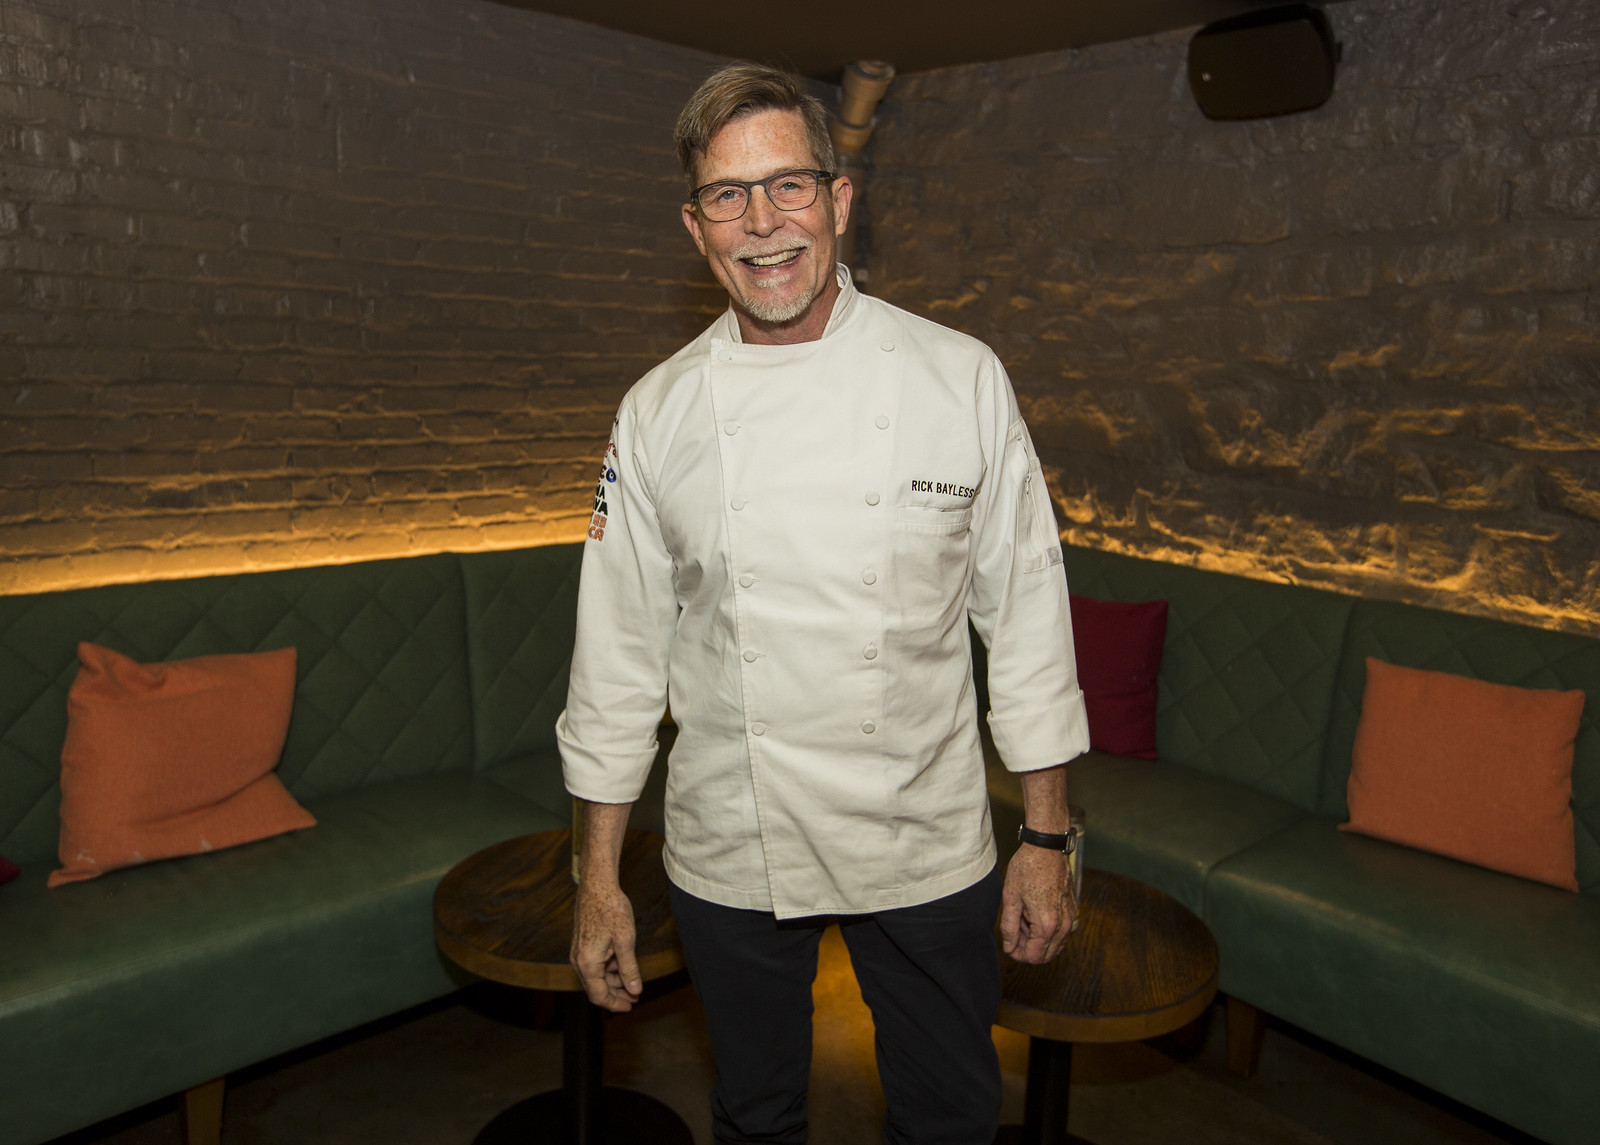 A man in a white chef's shirt standing.